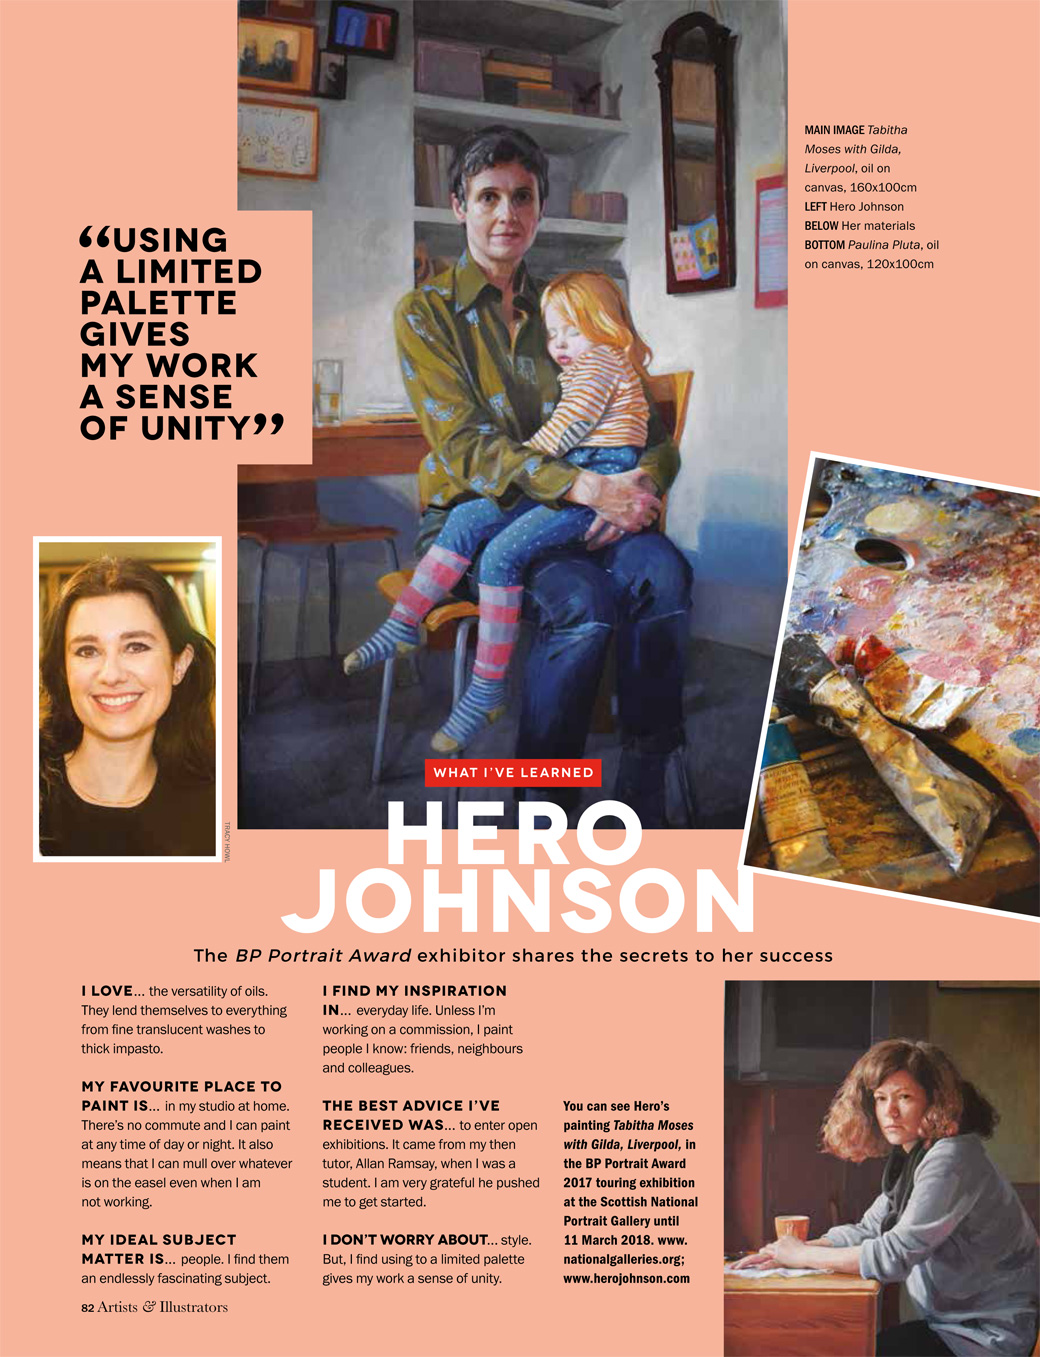 An interview with the artist Hero Johnson in Artists and Illustrators magazine.